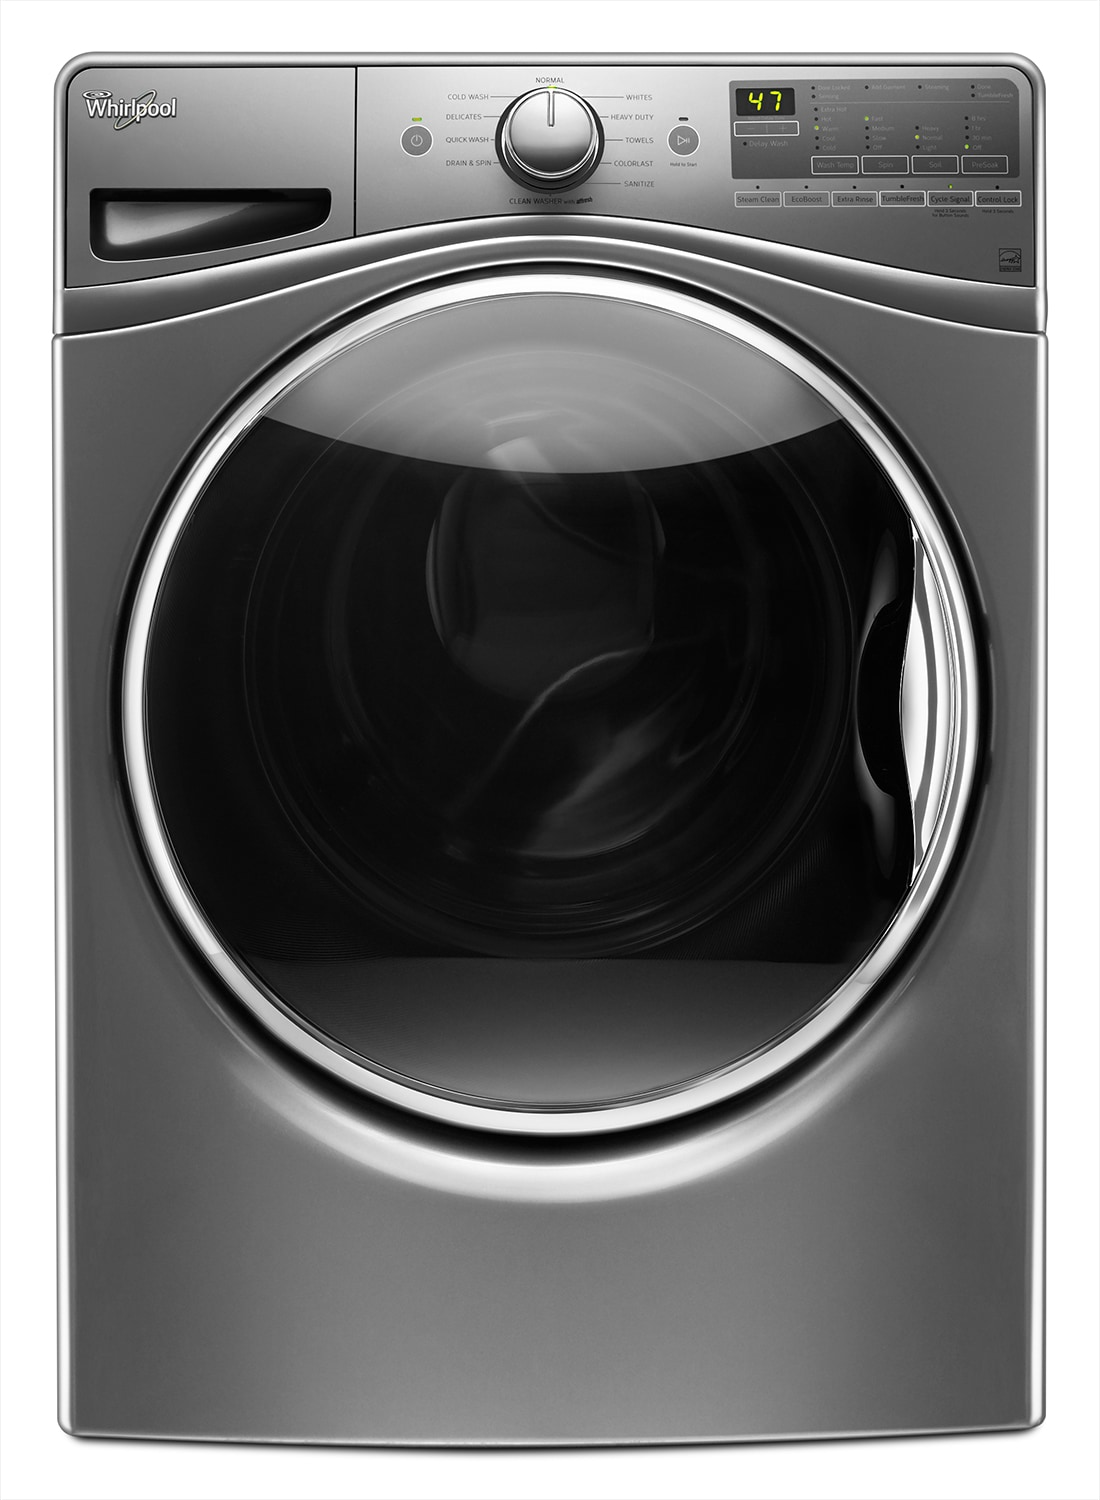 Washers and Dryers - Whirlpool 5.2 Cu. Ft. Front-Load Washer – WFW85HEFC